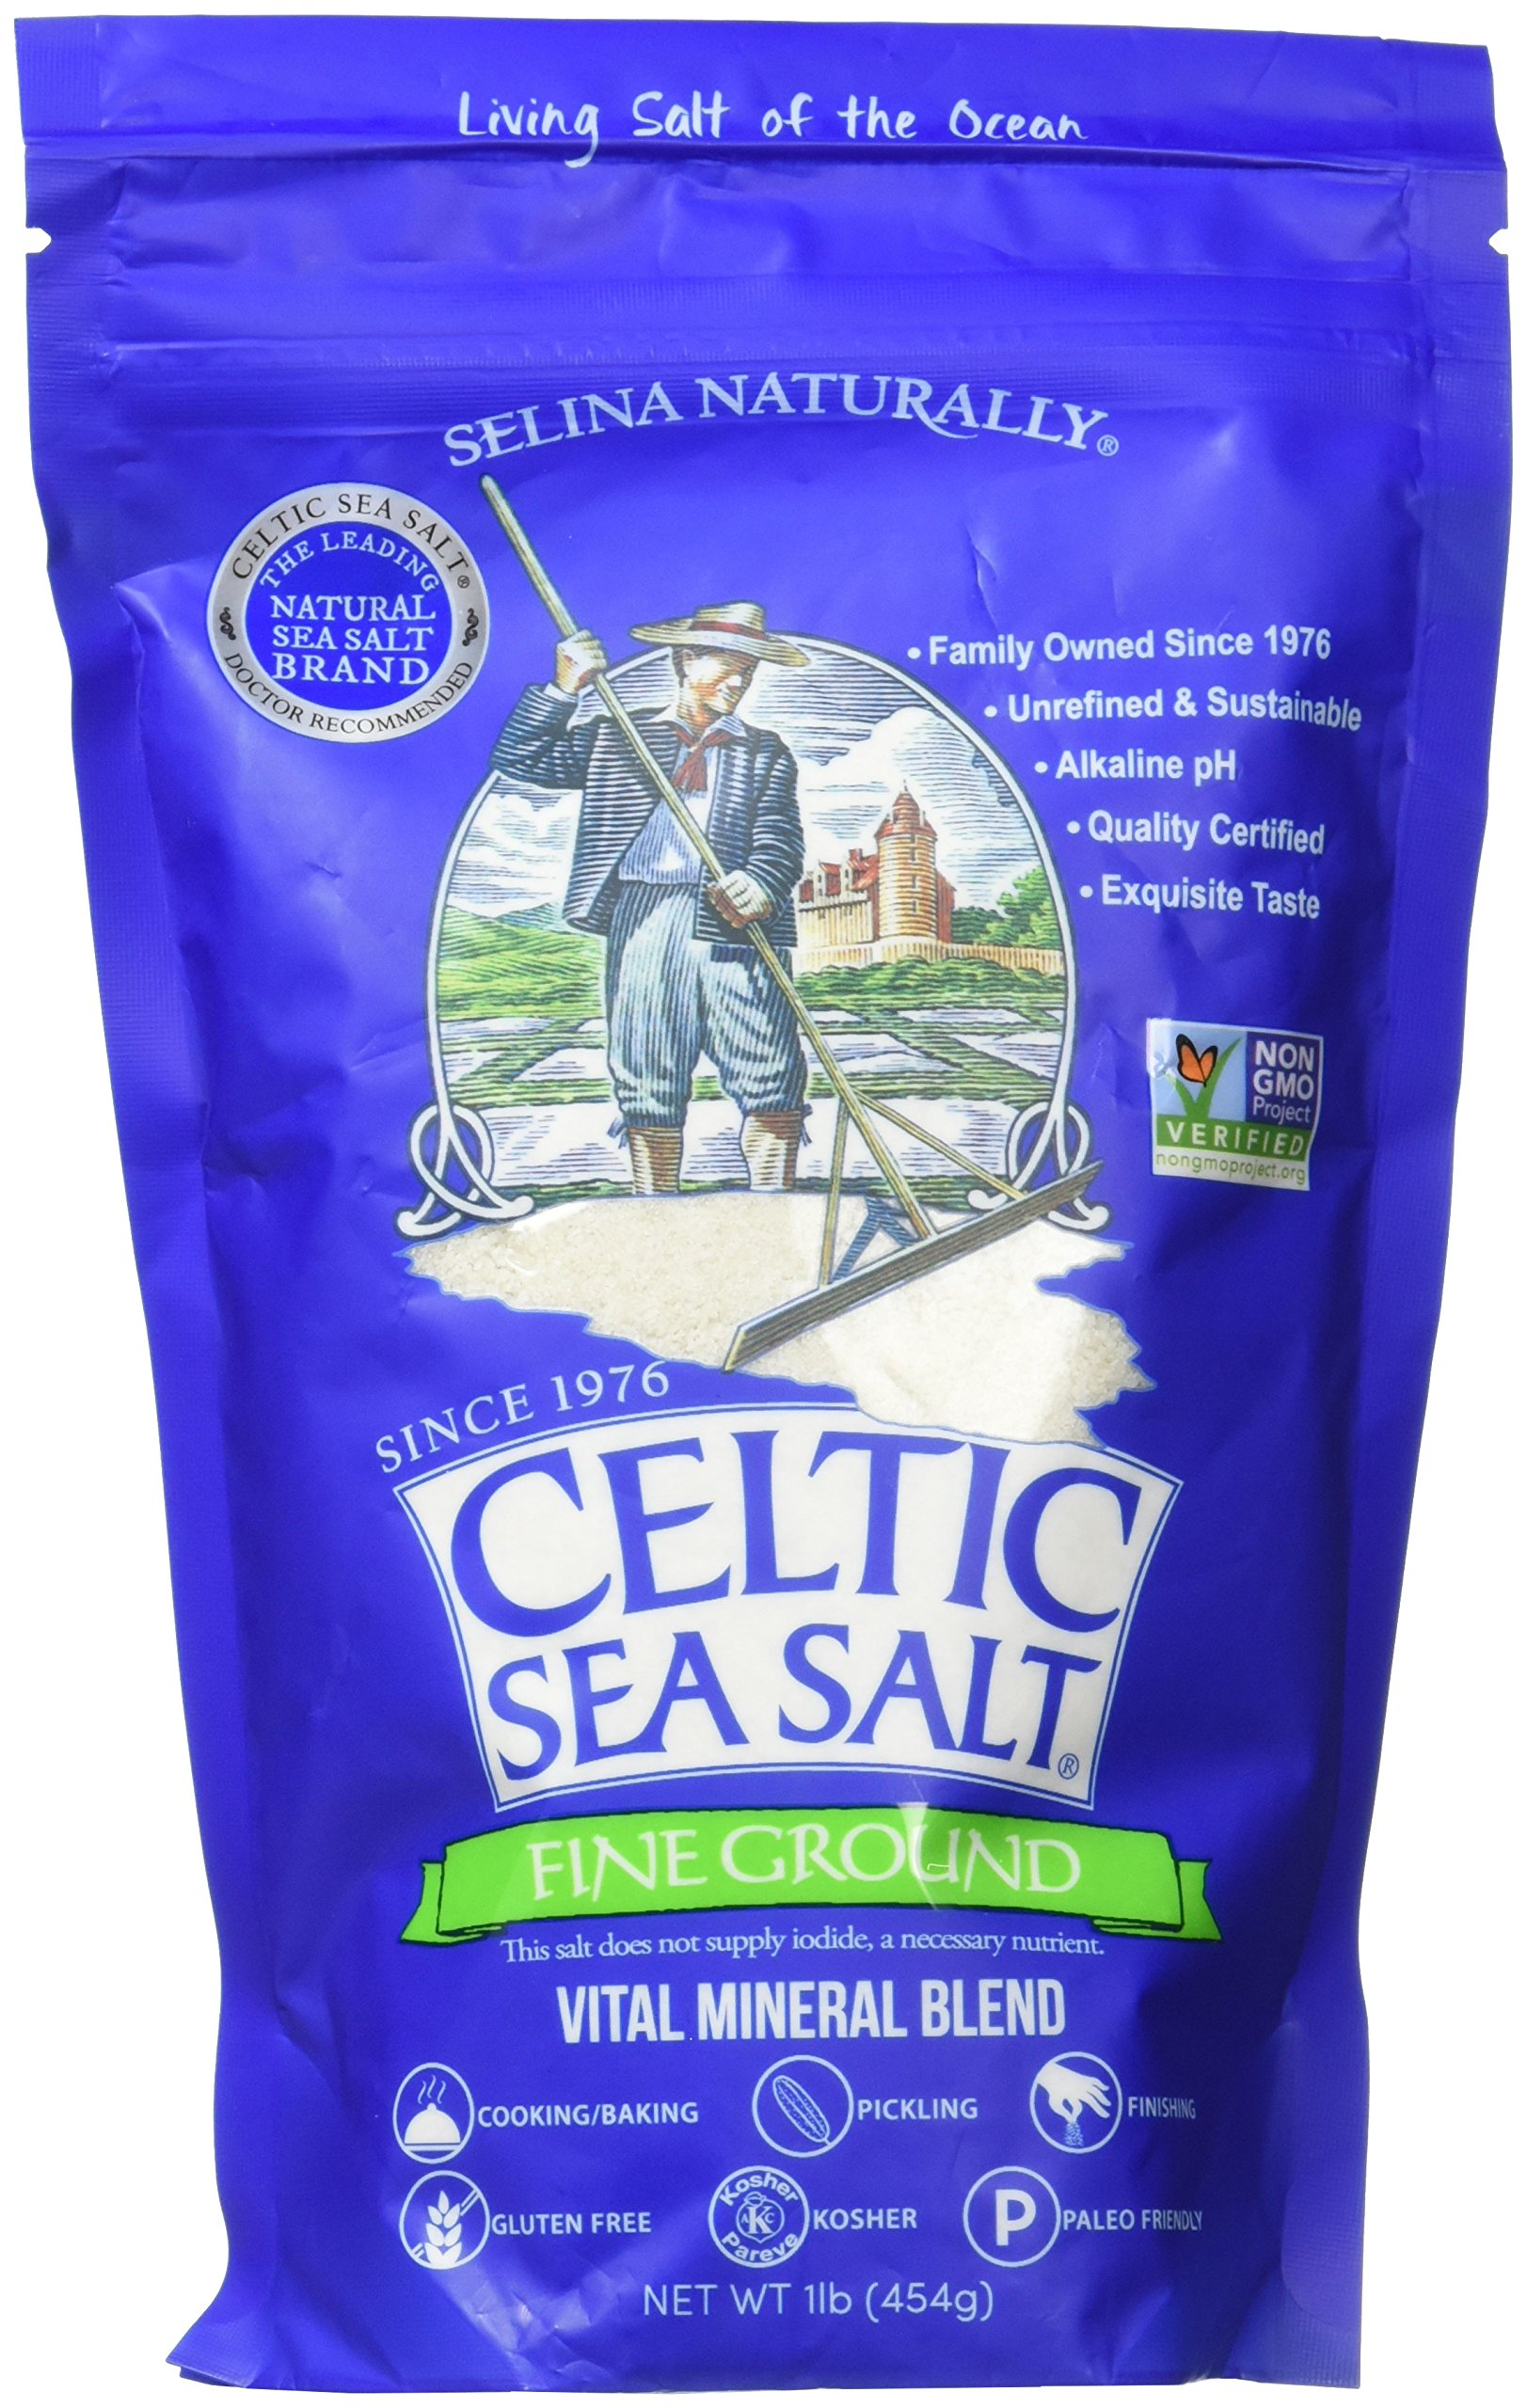 Fine Ground Celtic Sea Salt – (1) 16 Ounce Resealable Bag of Nutritious, Classic Sea Salt, Great for Cooking, Baking, Pantry-Friendly, Gluten-Free, Kosher and Paleo-Friendly